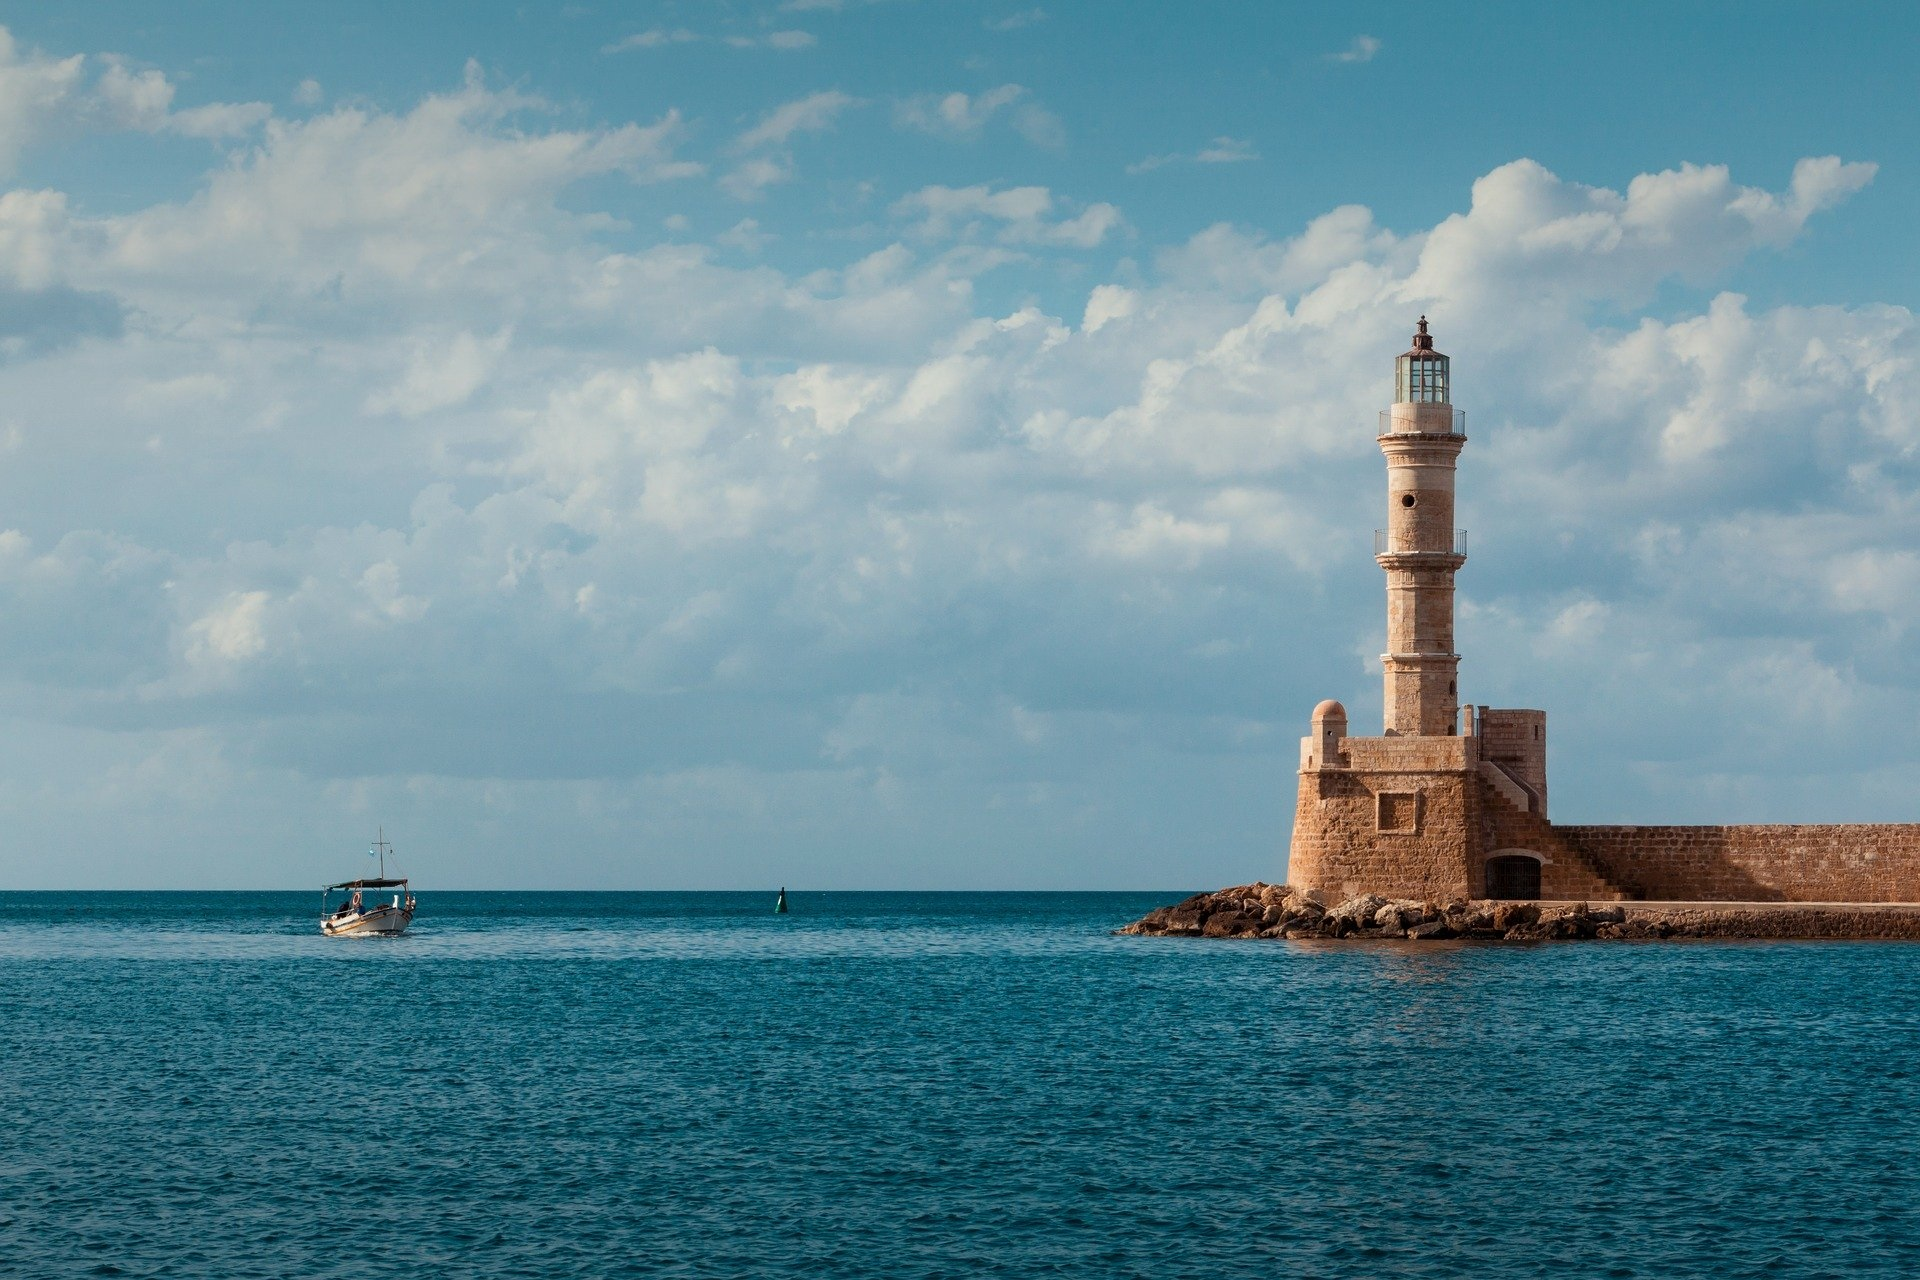 lighthouse-2104591_1920.jpg (622 KB)